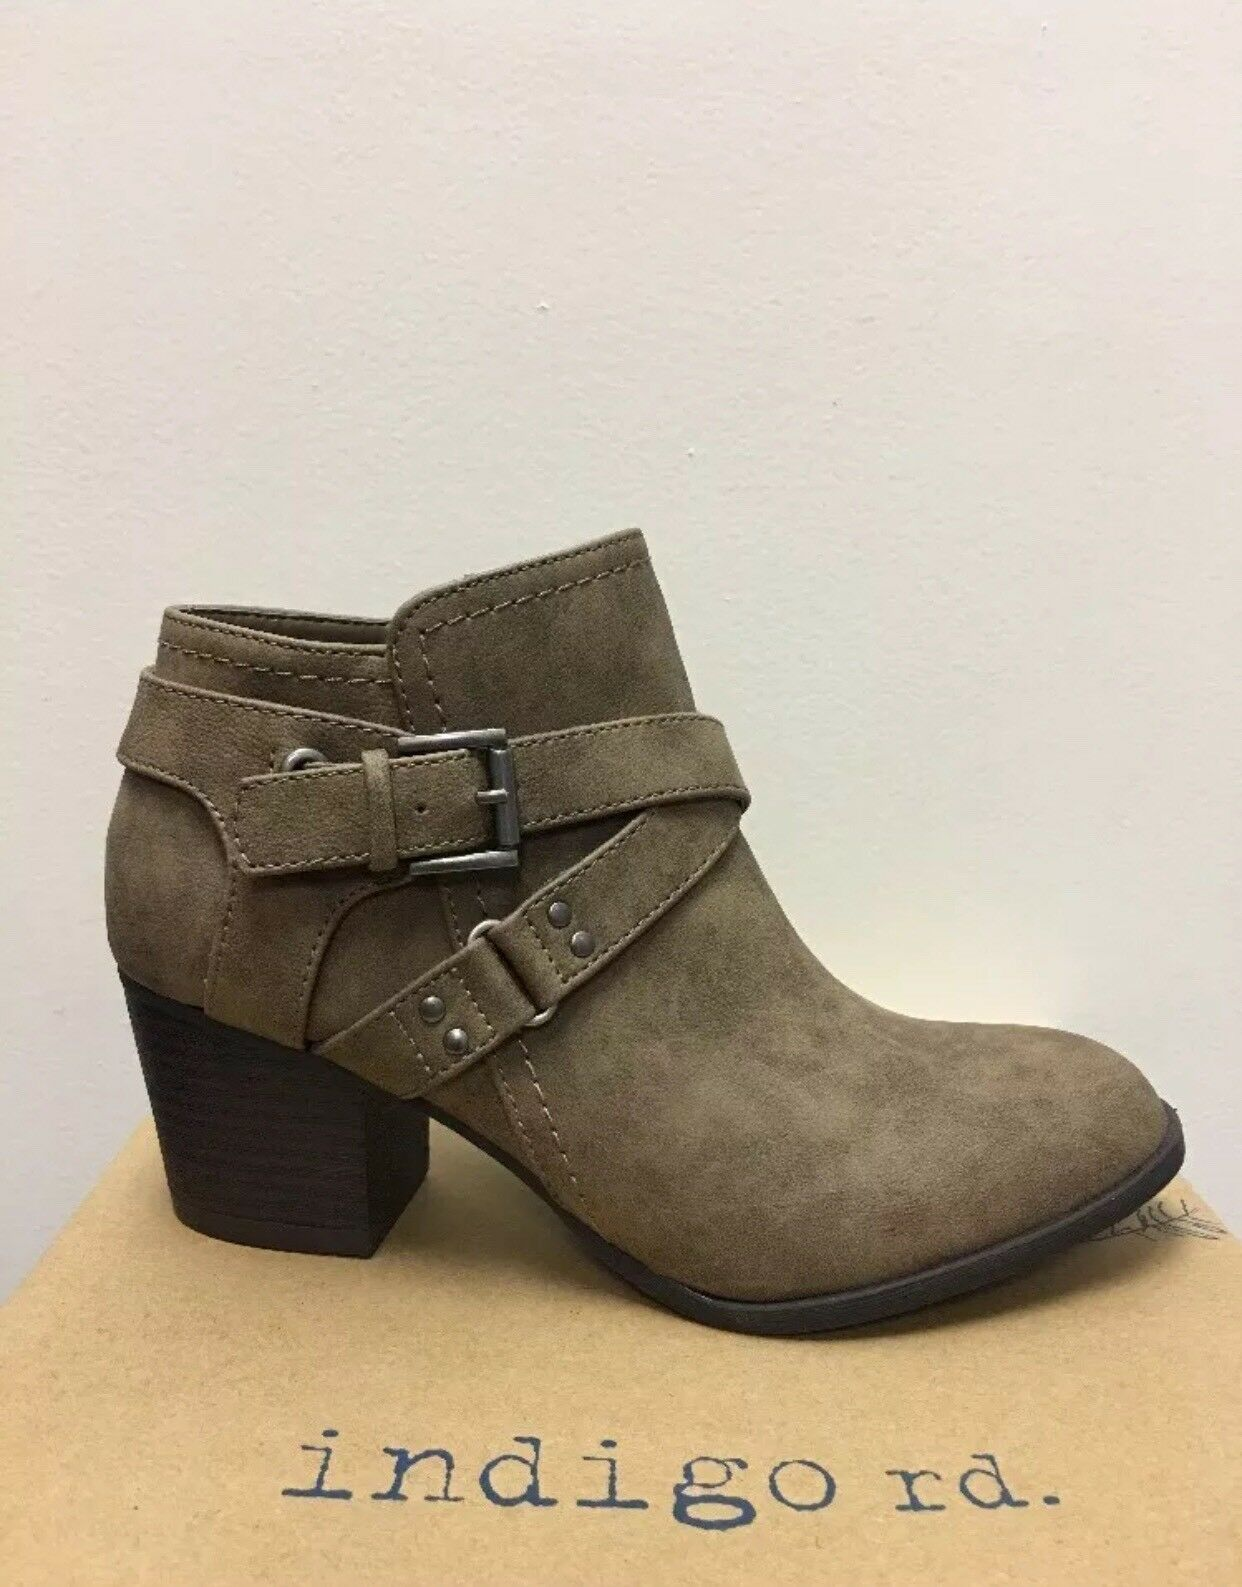 New - Women's Indigo Rd. Sablena2 Dark Brown Ankle Booties Size 9.5